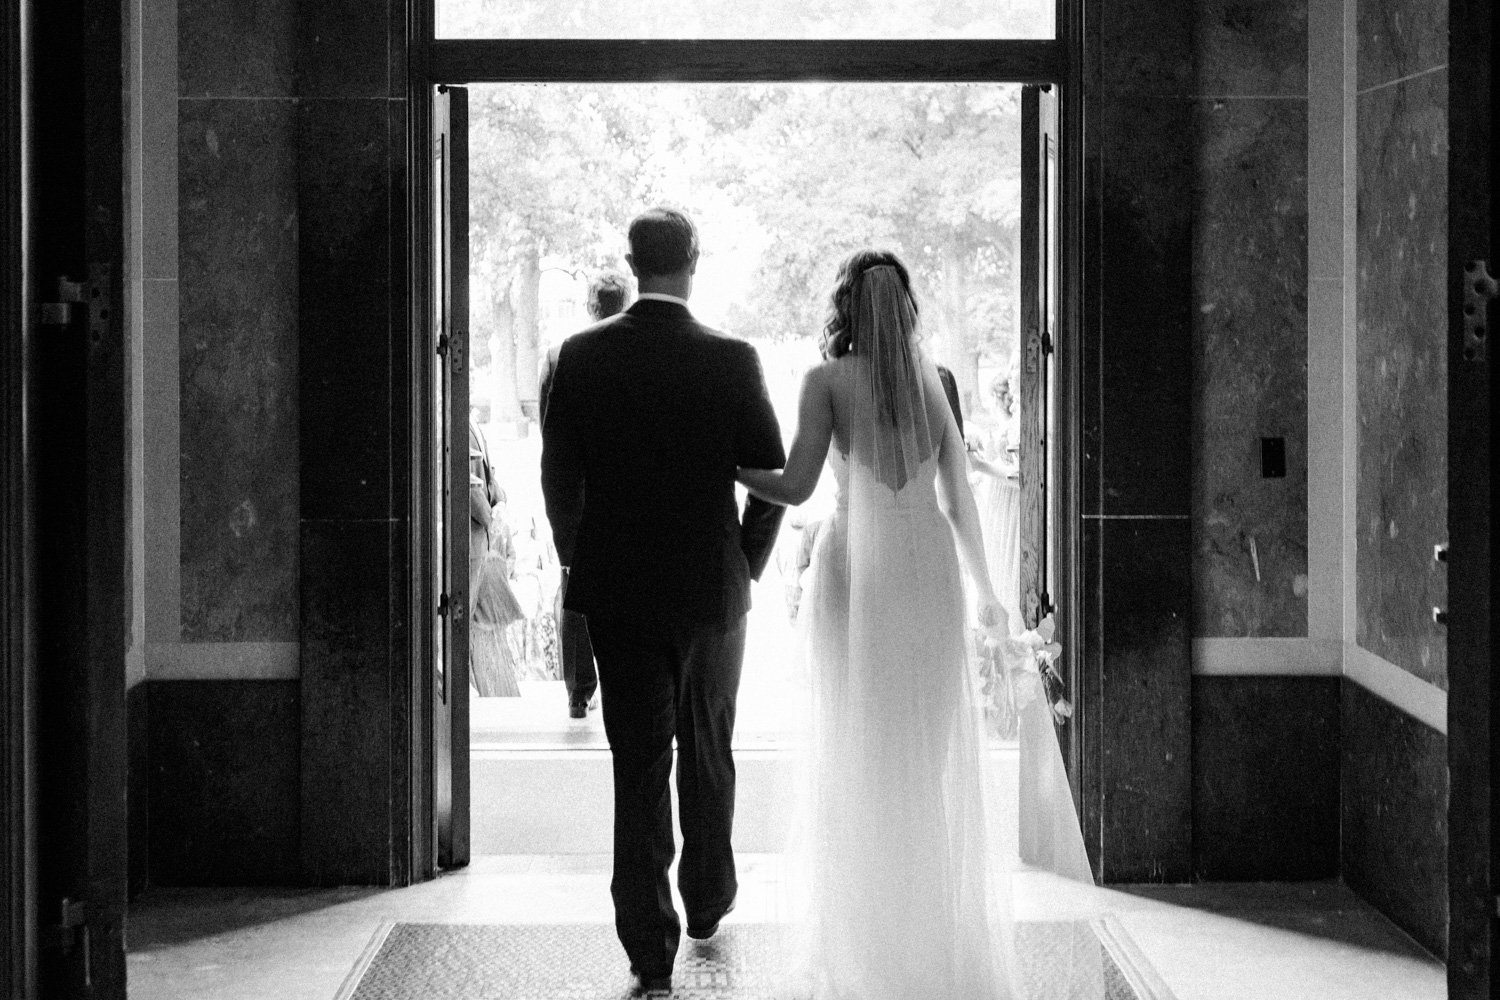 image of bride and groom exit US Naval Academy chapel wedding ceremony in black and white